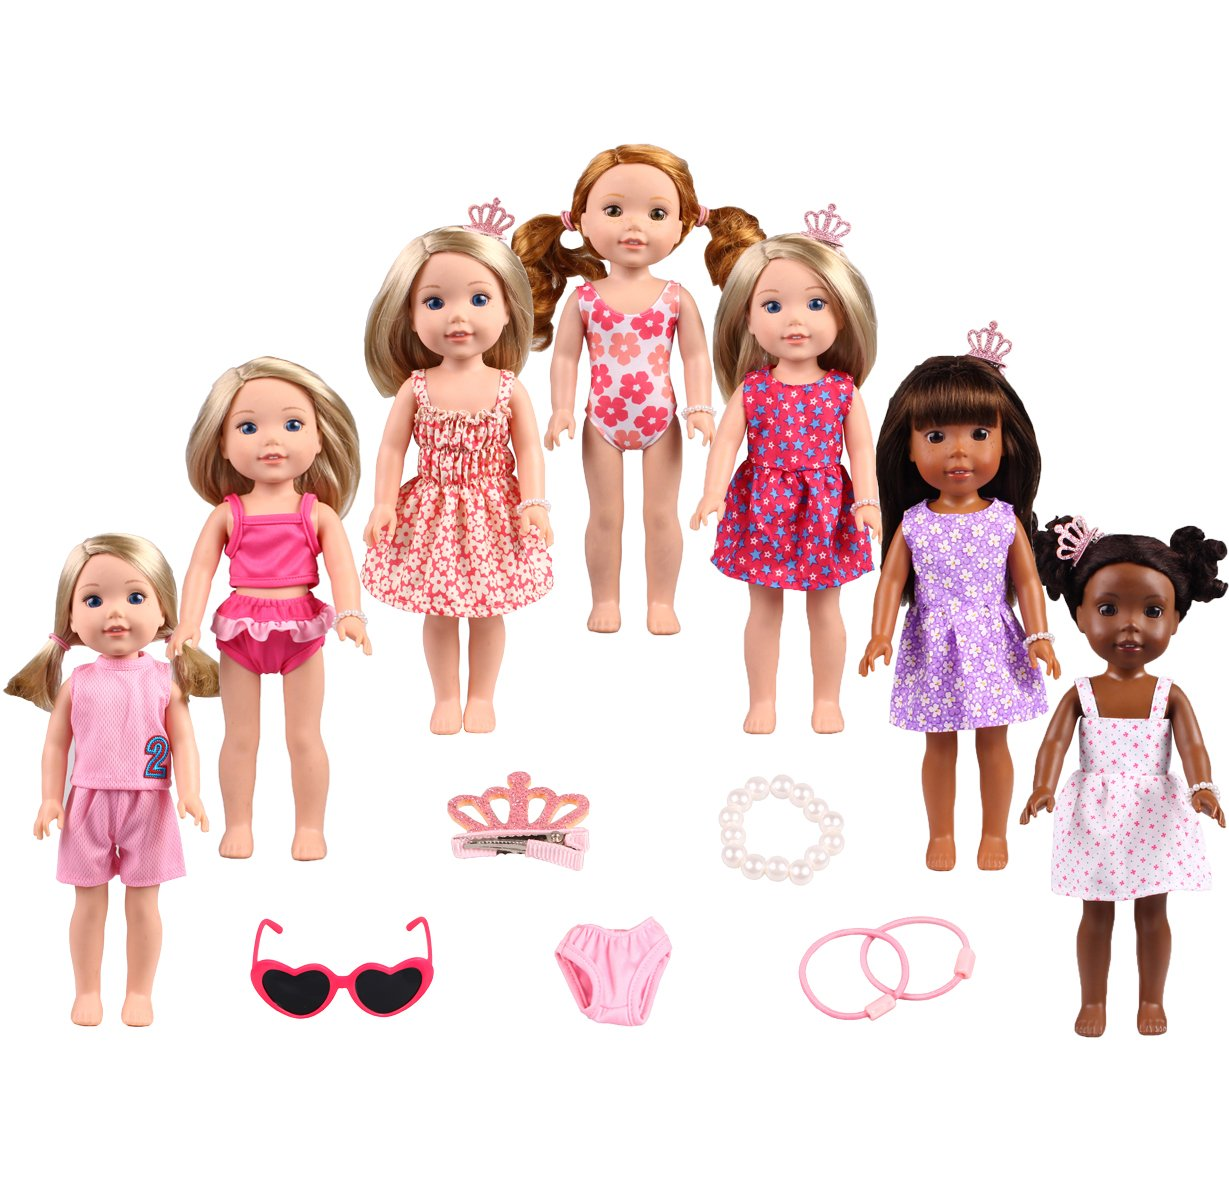 TSQSZ 14 inch 15 inch Doll Clothes&Accessories 7set Clothes fit American Girl Dolls Wellie wishers Clothes